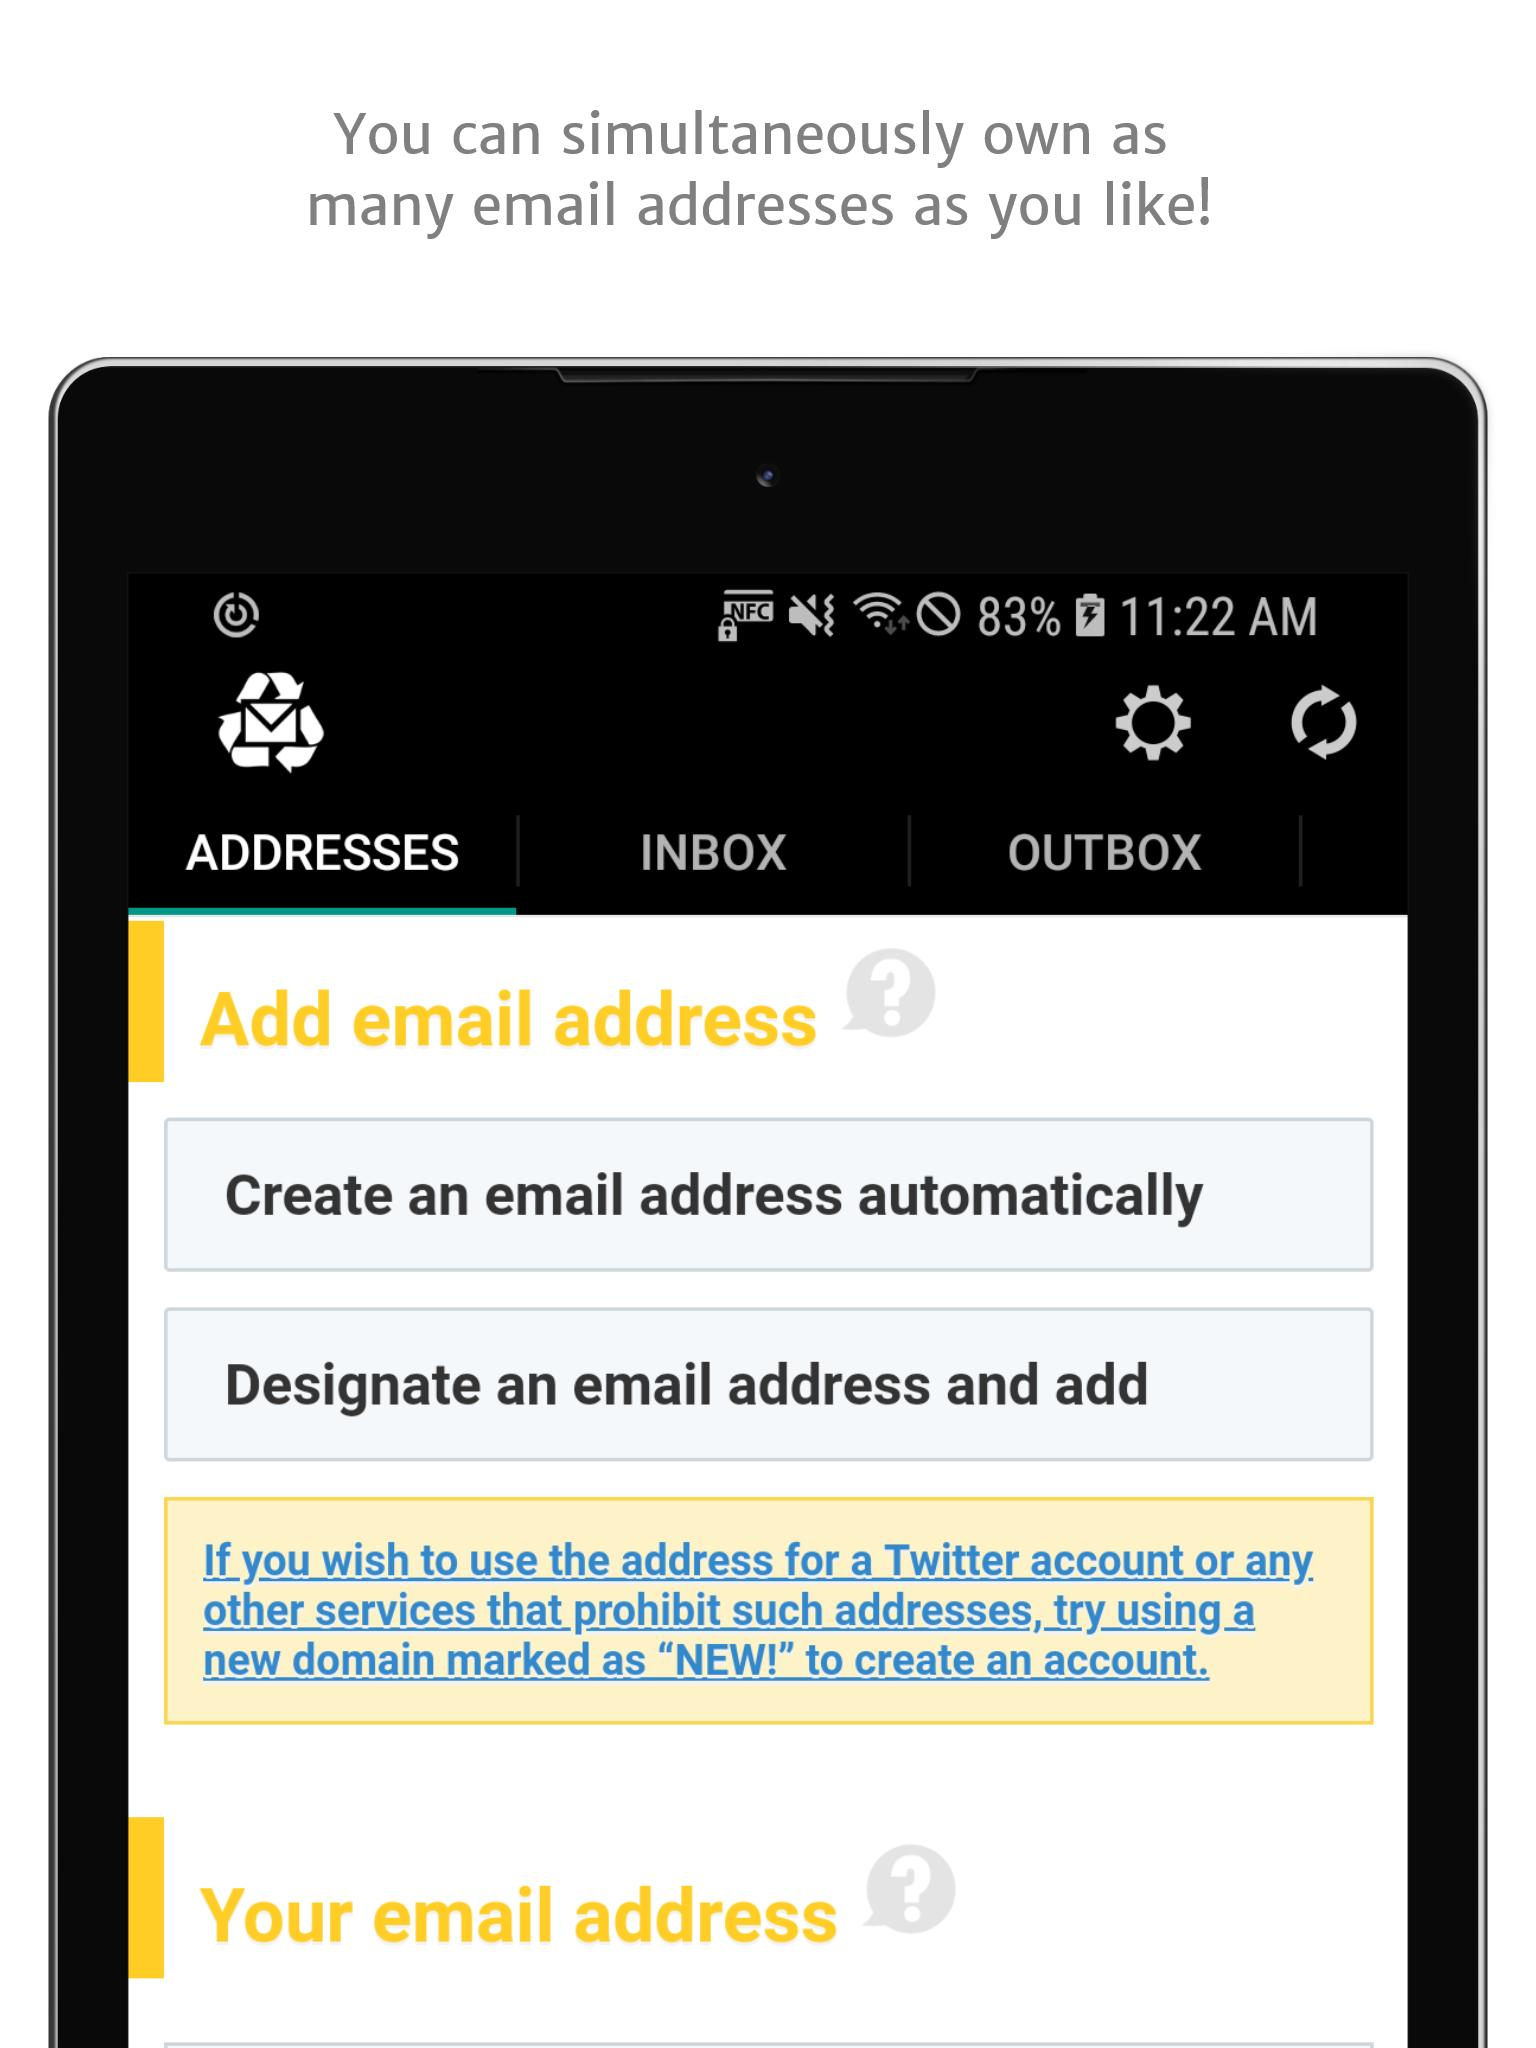 Instant Email Address - Multipurpose free email! for Android - APK